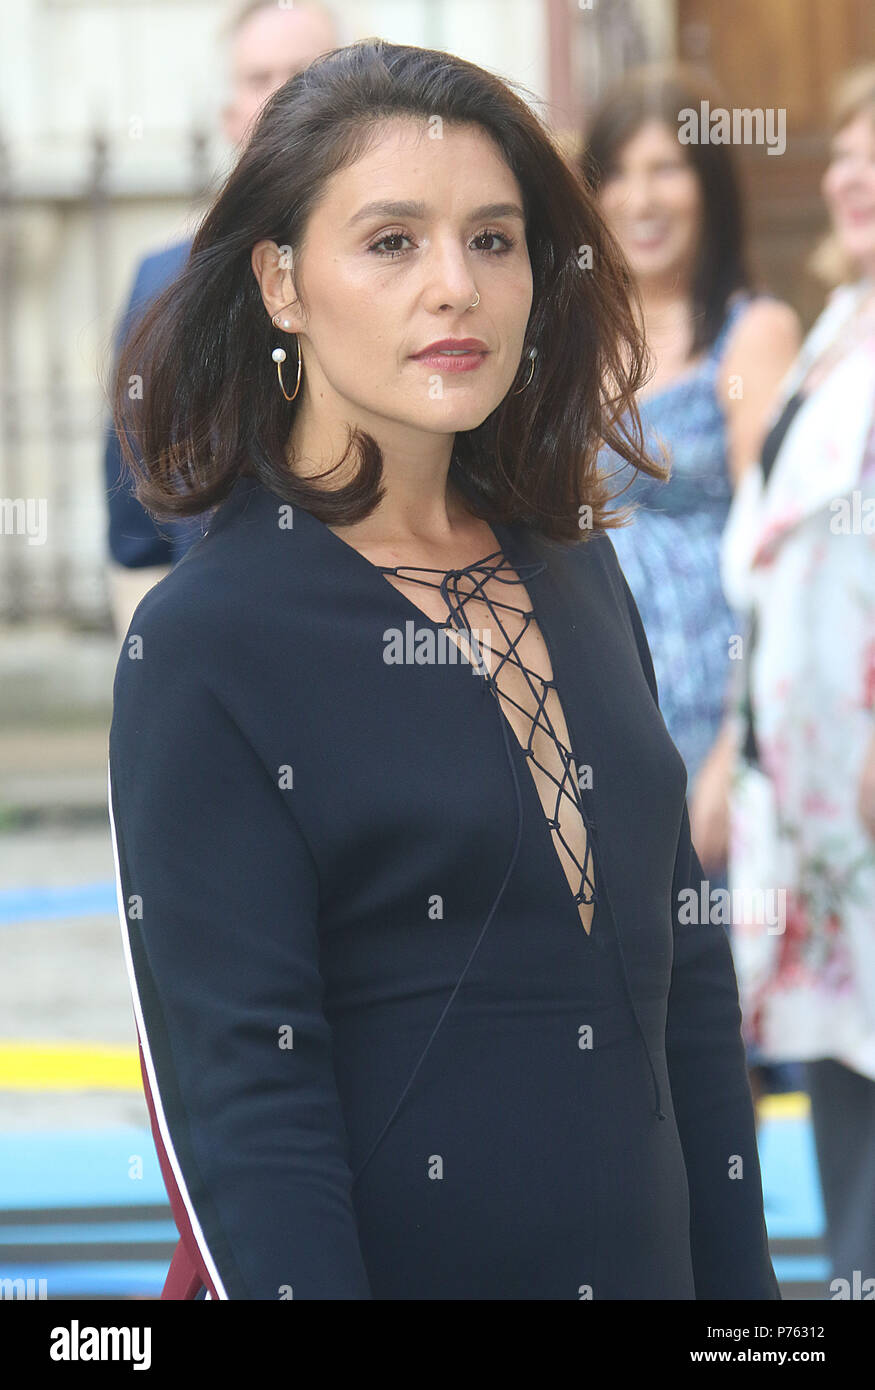 Jun 06, 2018 - Jessie Ware attending Royal Academy Of Arts 250th Summer Exhibition Preview Party at Burlington House in London, England, UK Stock Photo